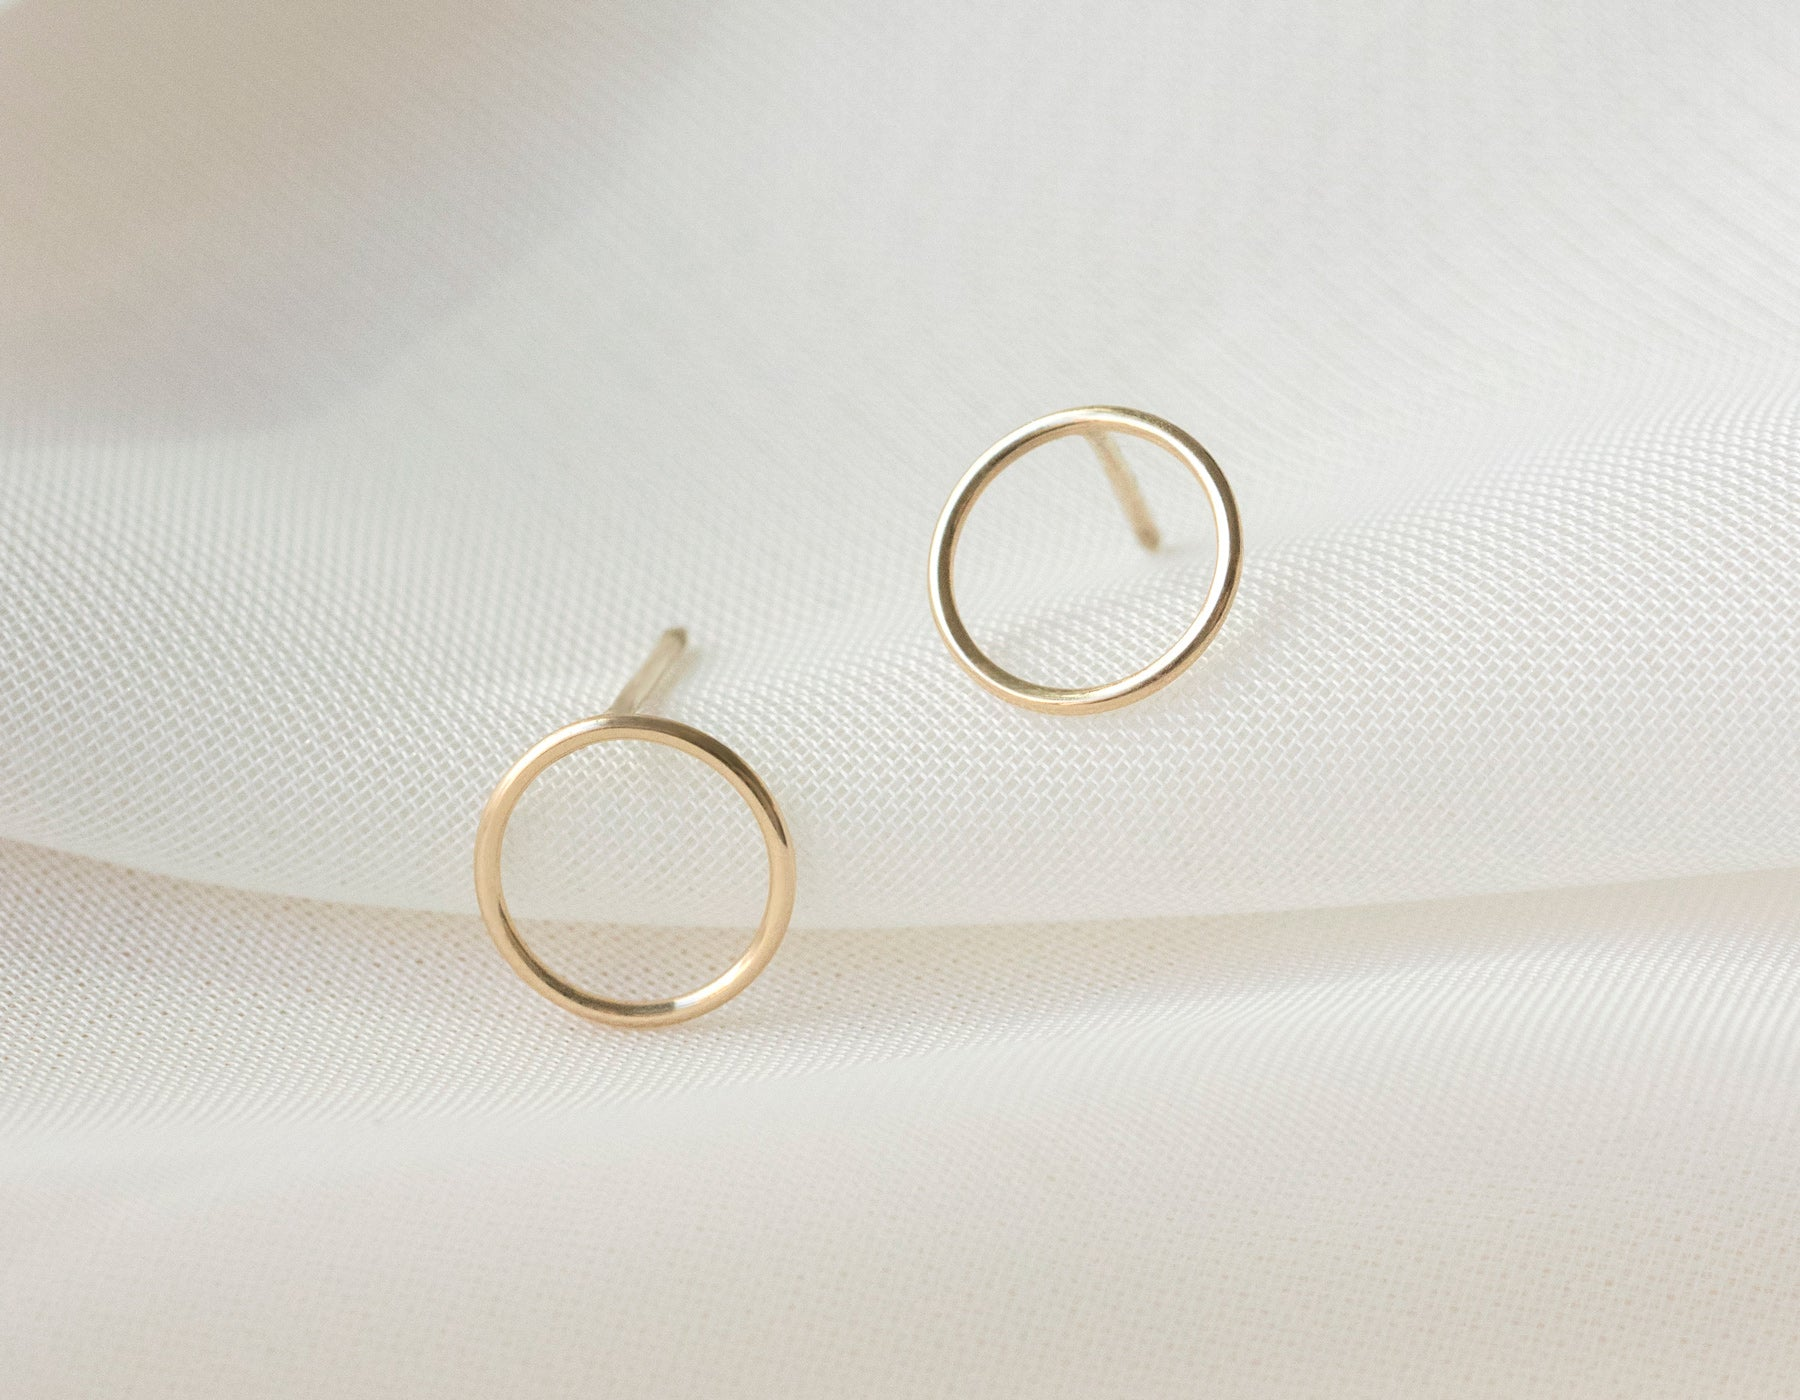 Minimalist Circle Stud Earrings solid 14k gold Vrai & Oro simple elegant jewelry